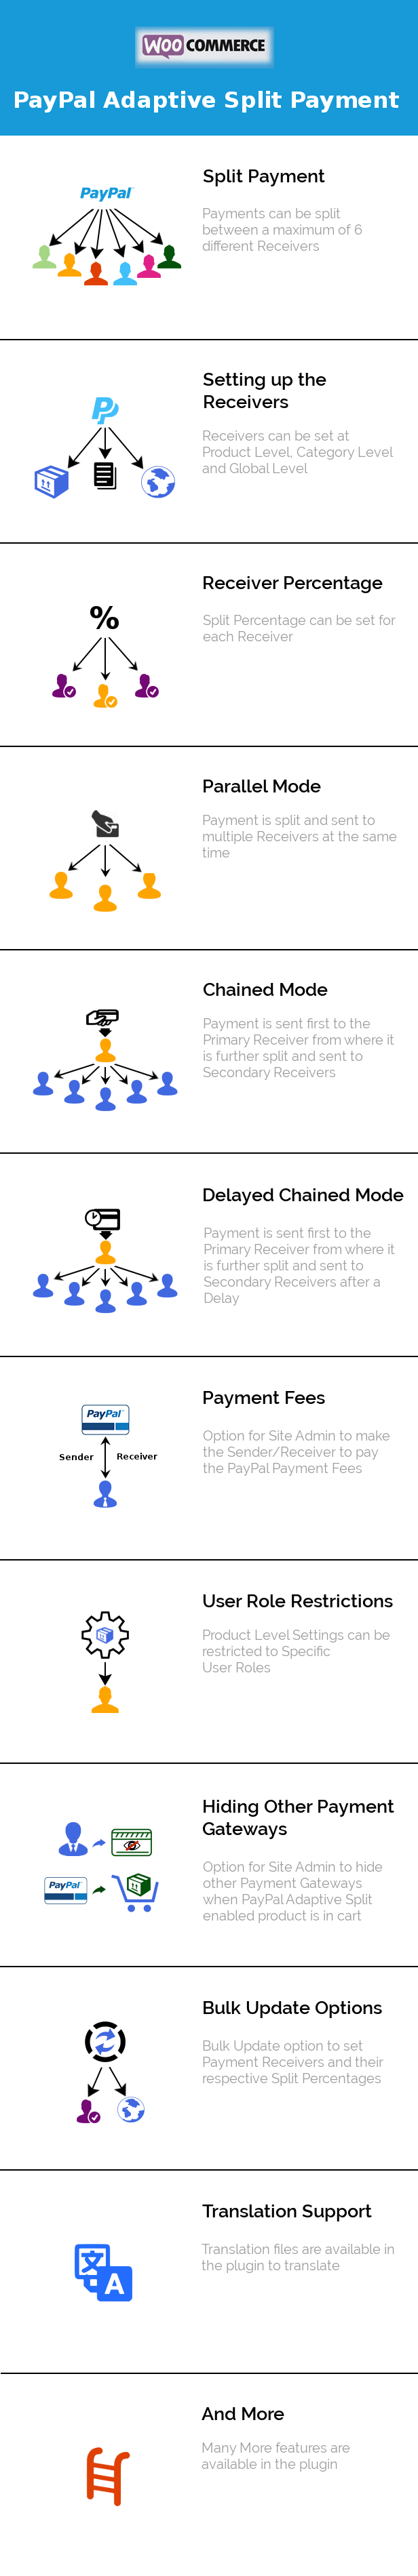 PayPal Adaptive Split Payment_Features_Infographics_Image